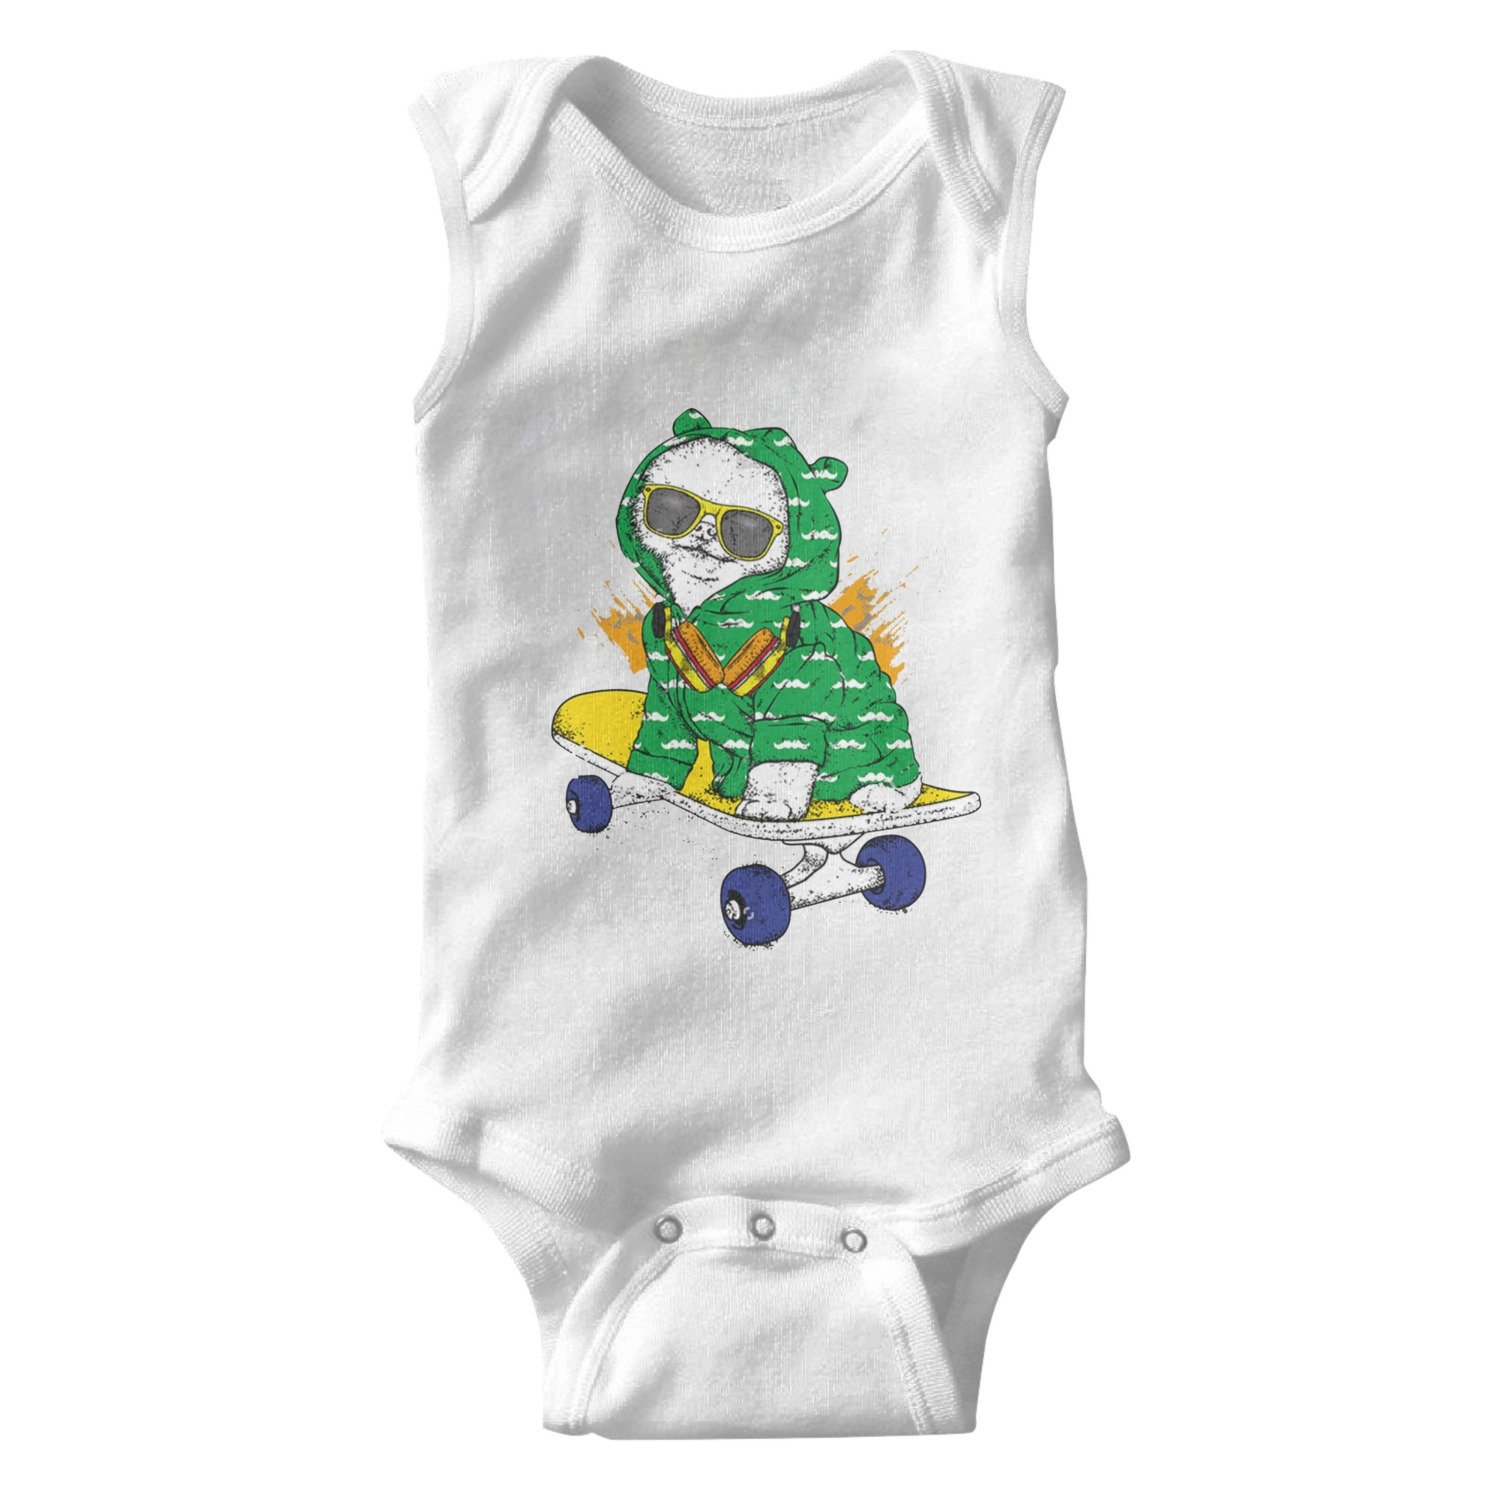 Funny Puppy Dog On Skateboard with Glasses Headphone Unisex Baby Cotton Sleeveless Cute Baby Clothes Baby Onesies White